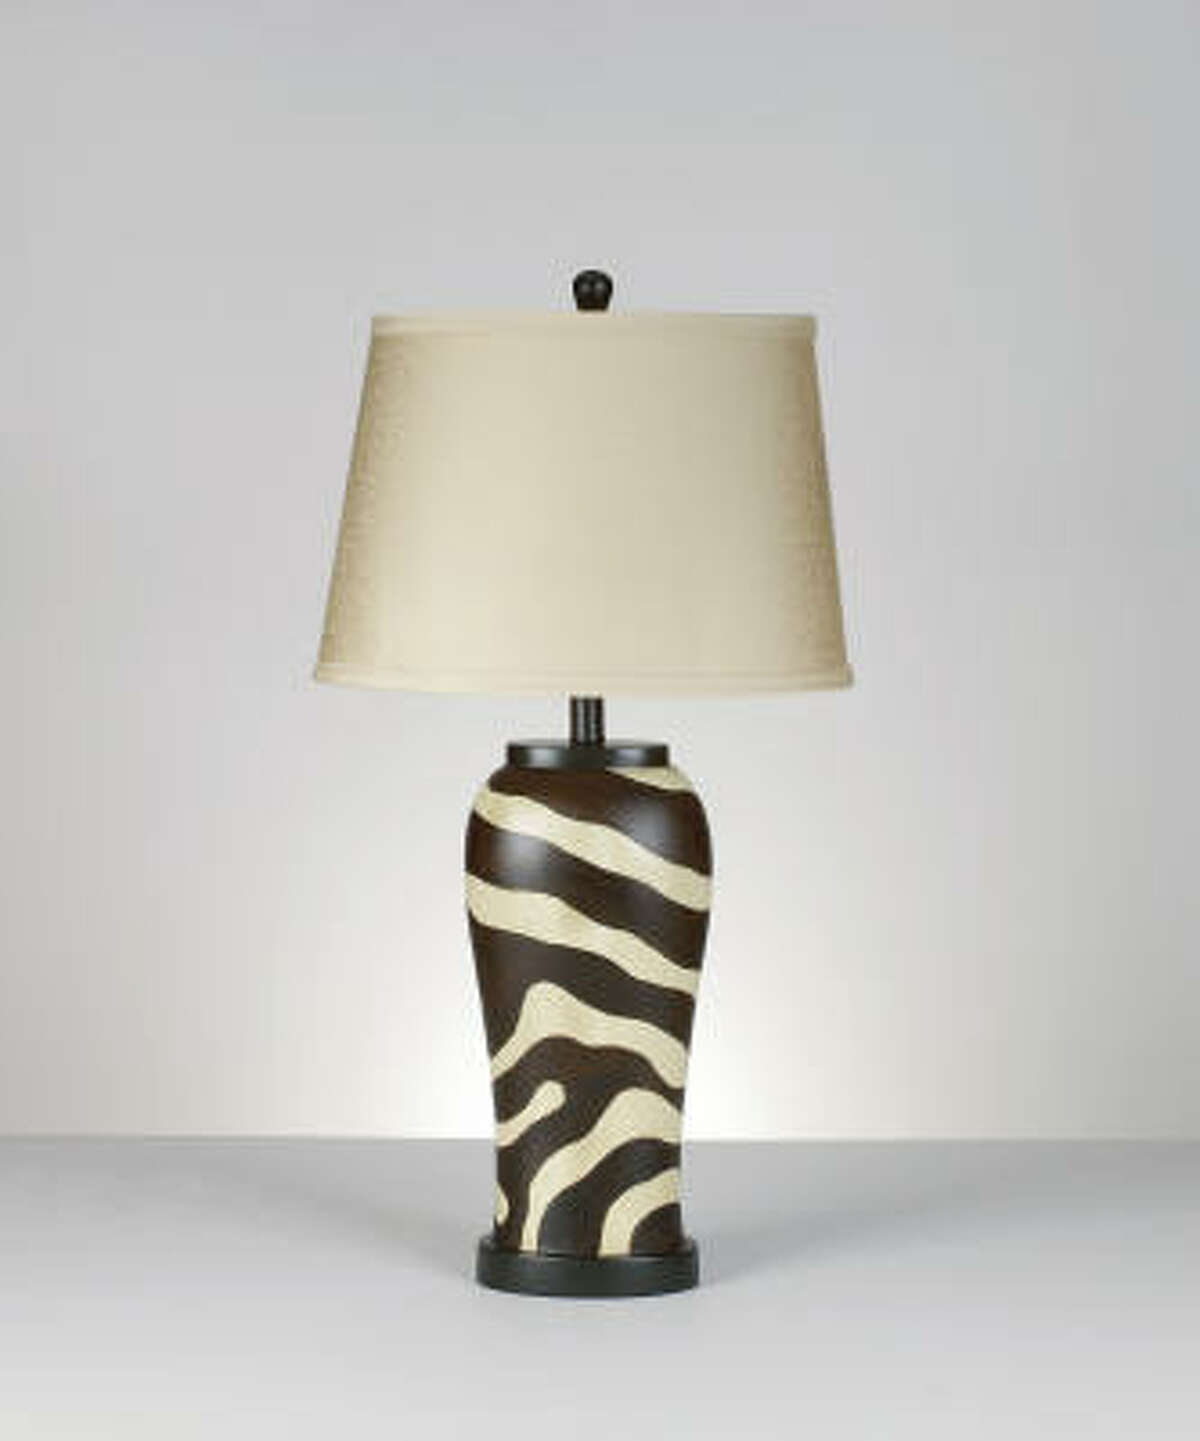 Jahzara table lamp, $127 for two, Ashley Furniture HomeStore.